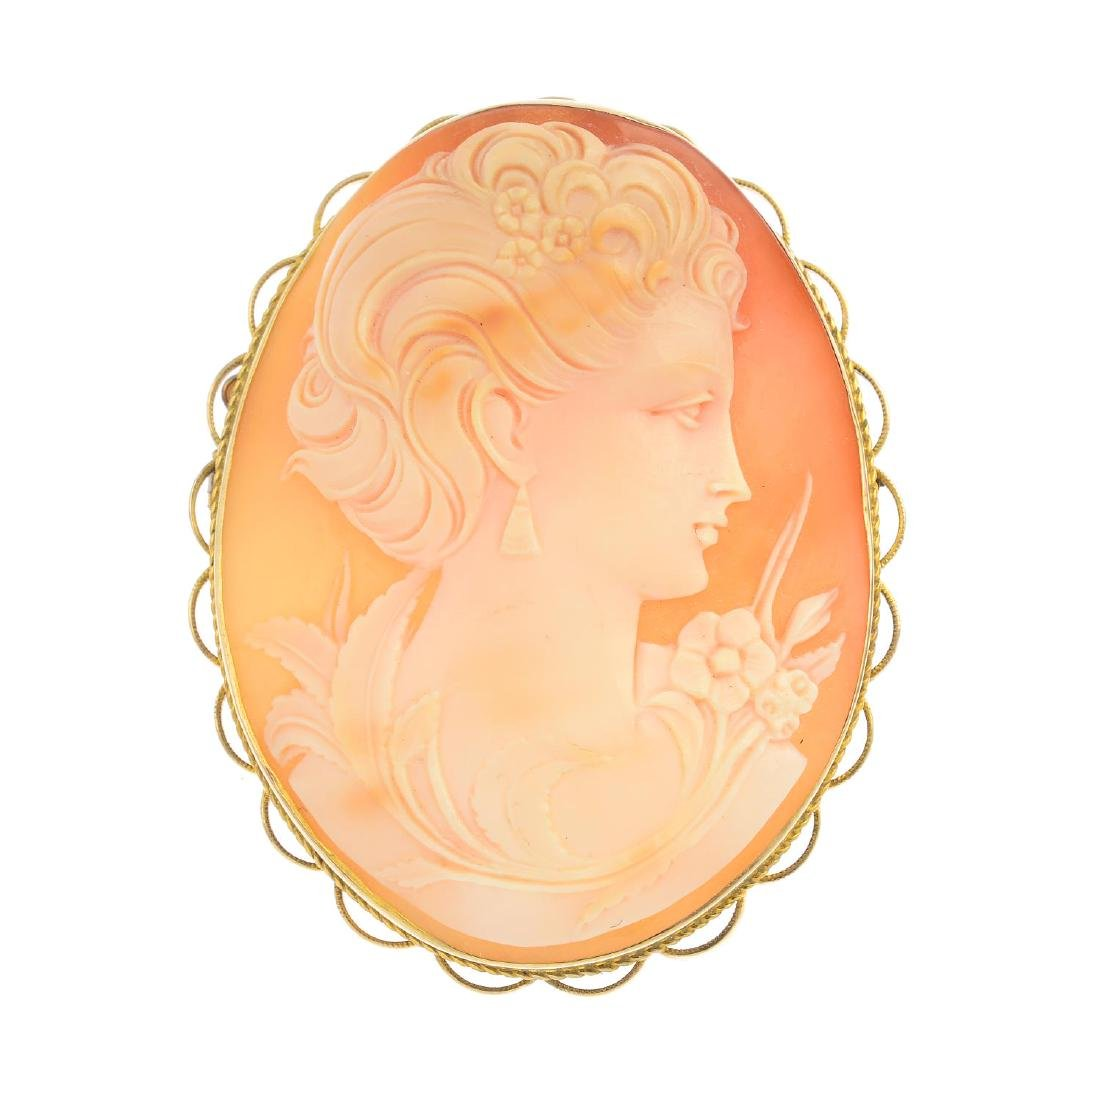 An early 20th century 9ct gold shell cameo brooch. The